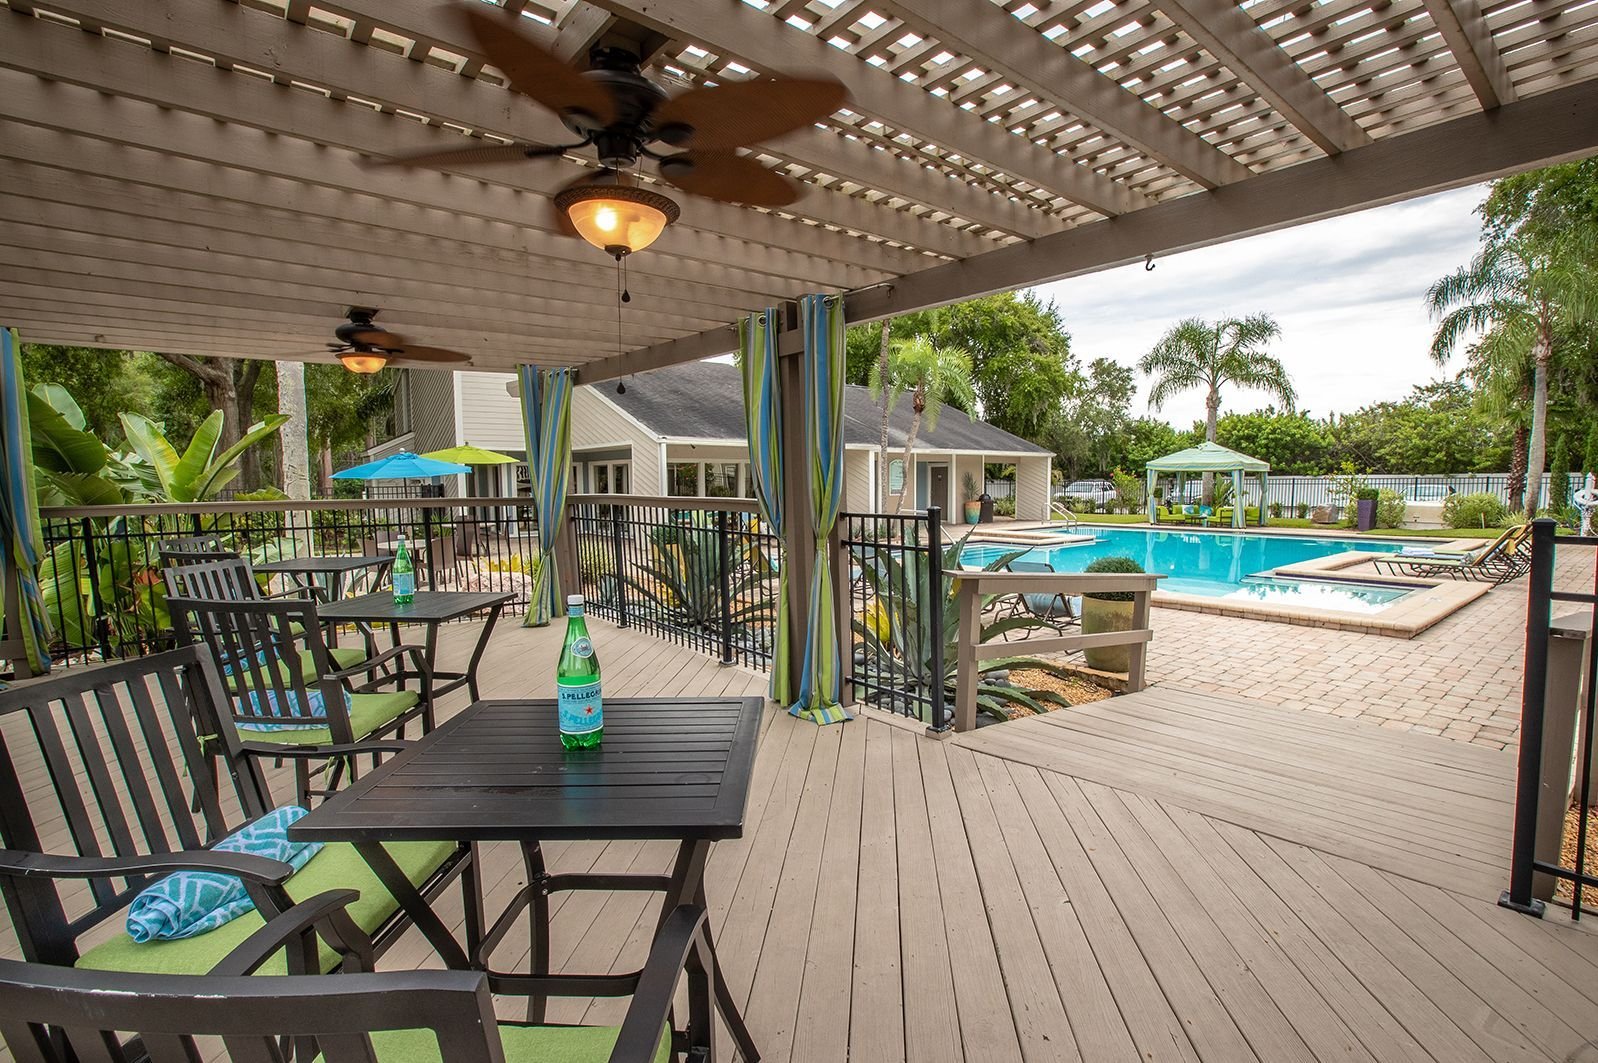 Poolside covered lounge area with tables and chairs